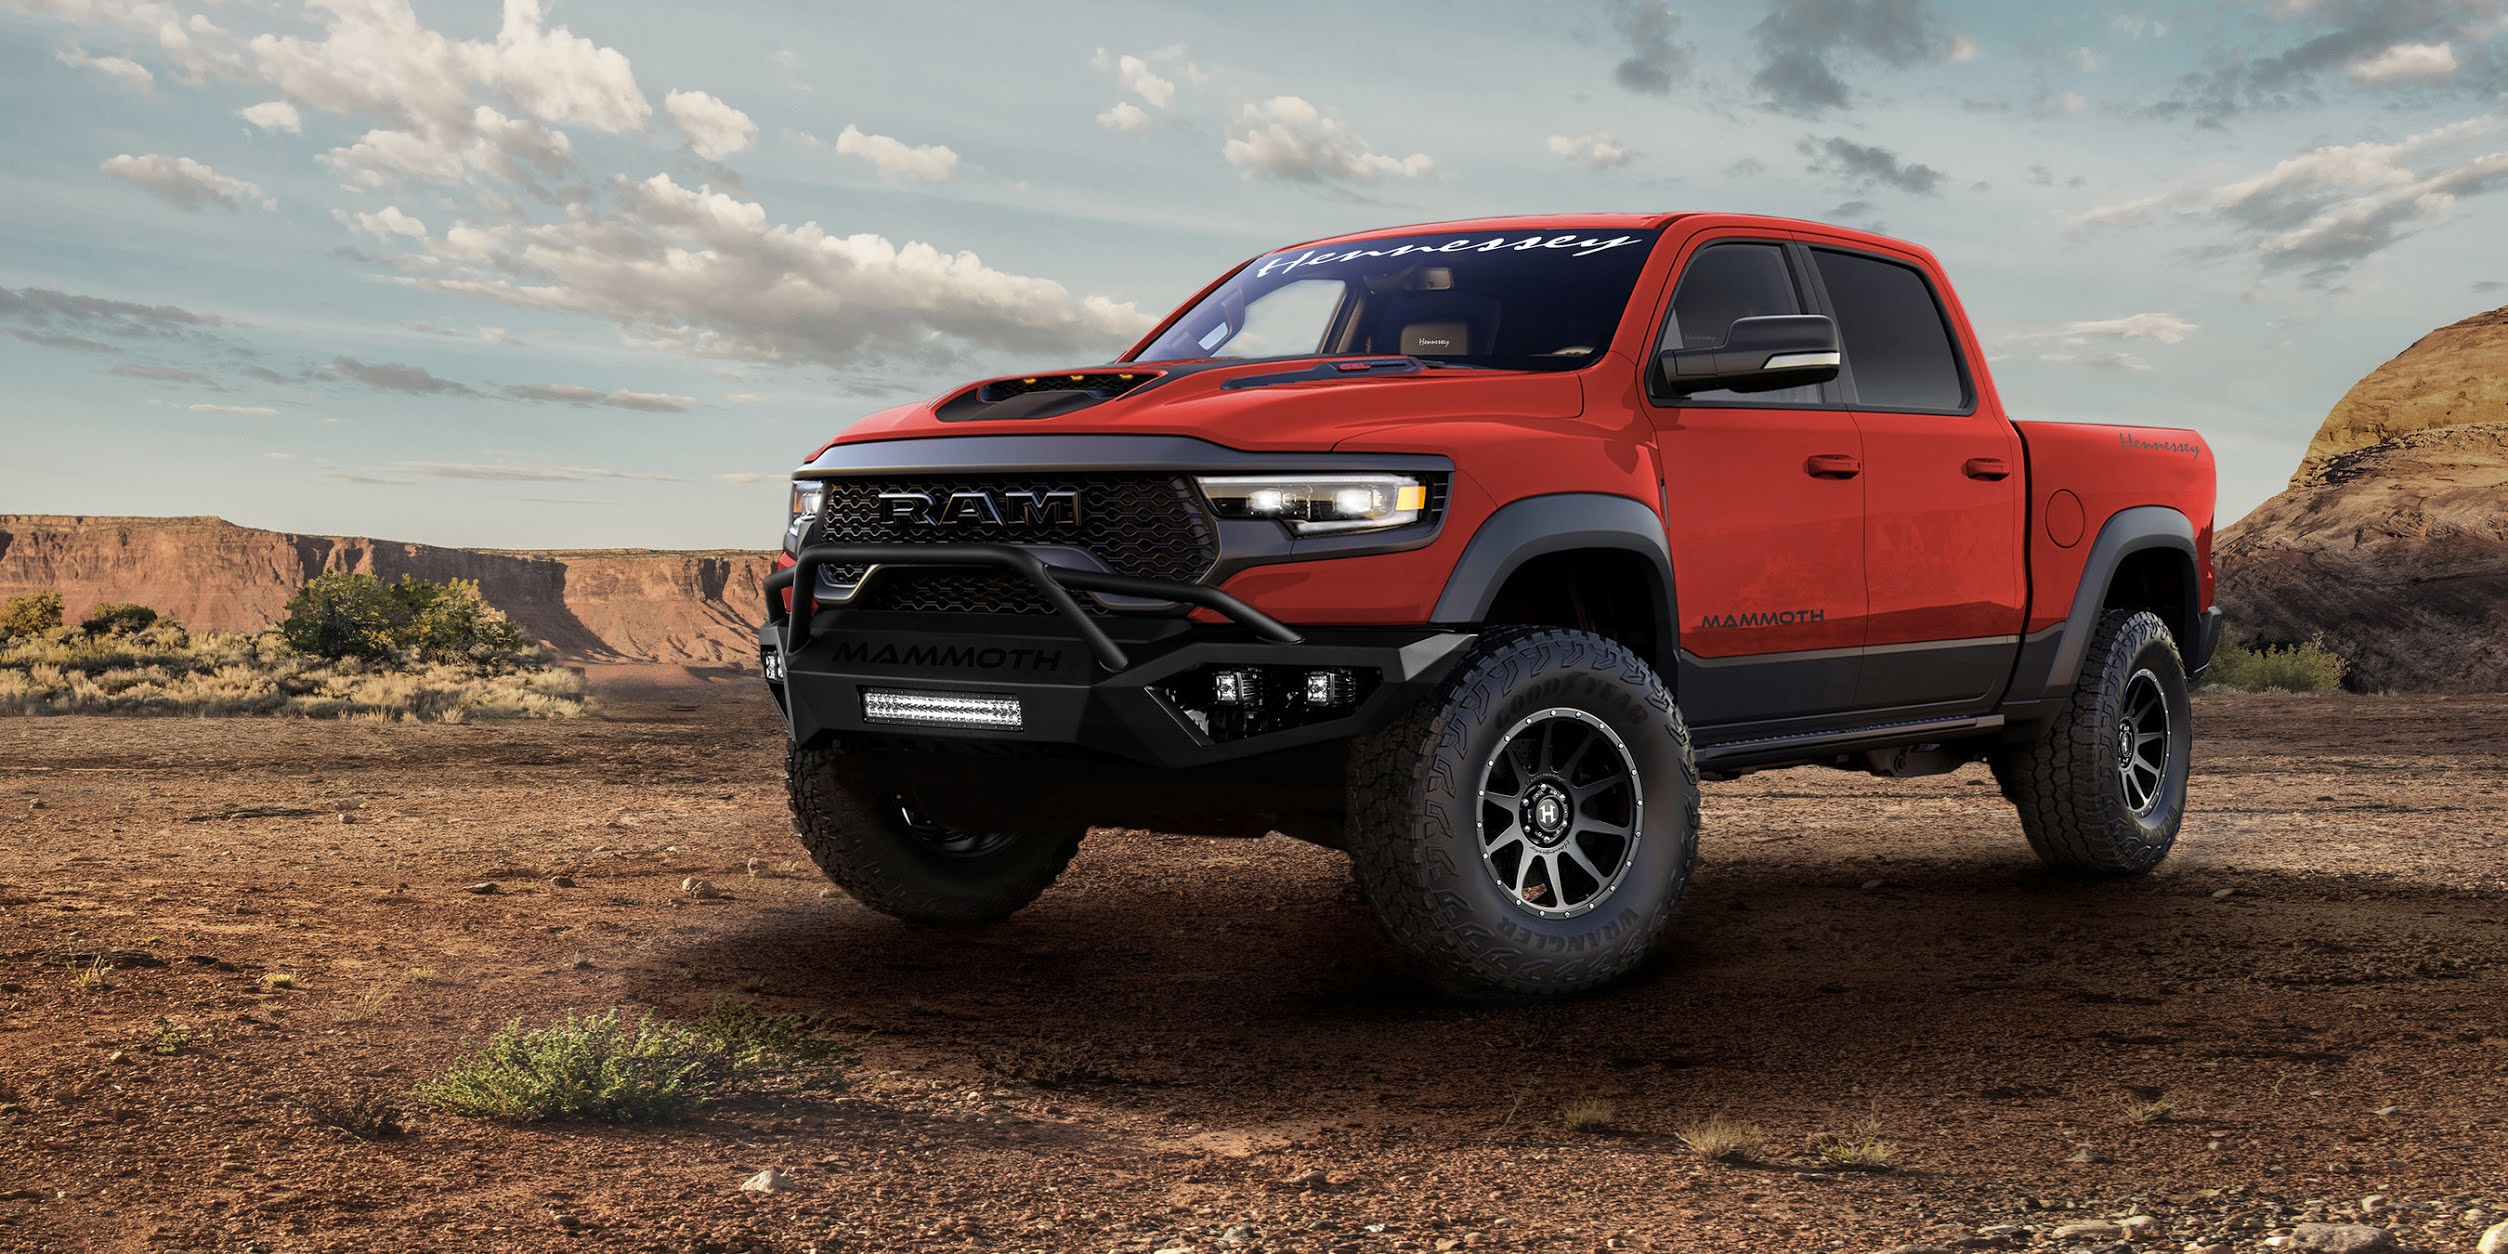 Introducing The 2021 HENNESSEY MAMMOTH 1000 Supercharged RAM TRX Pick-Up Truck